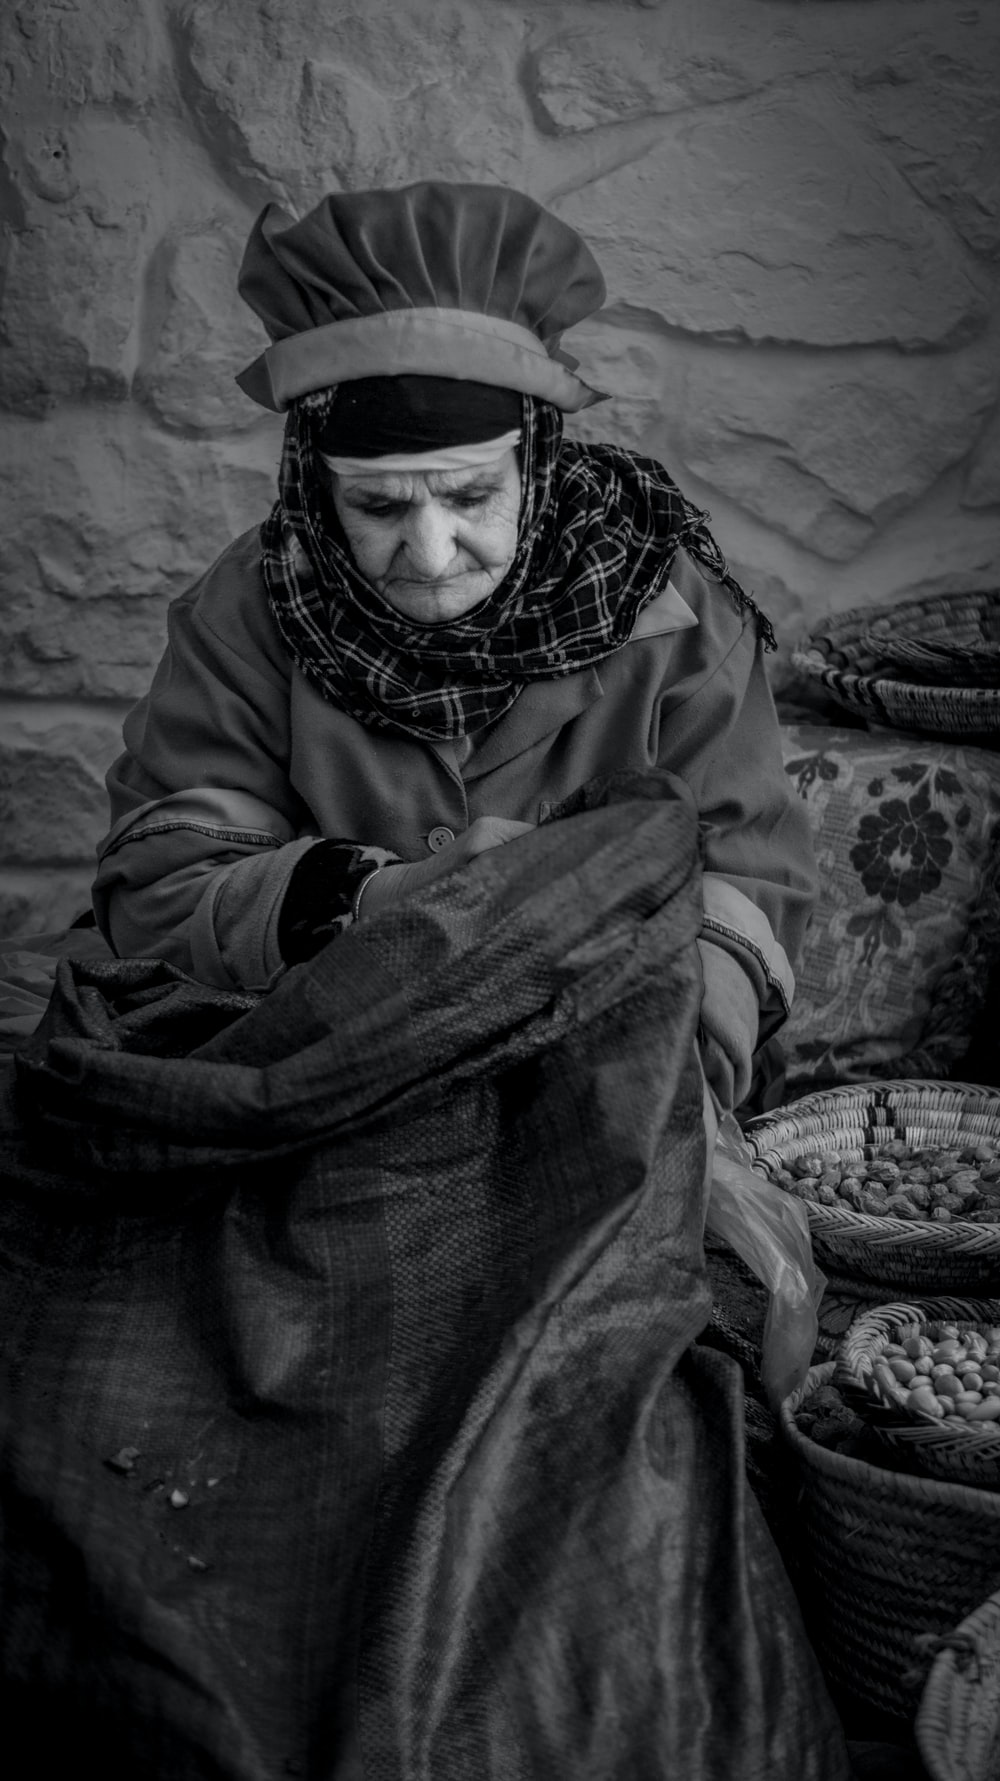 grayscale photo of woman sitting near baskets